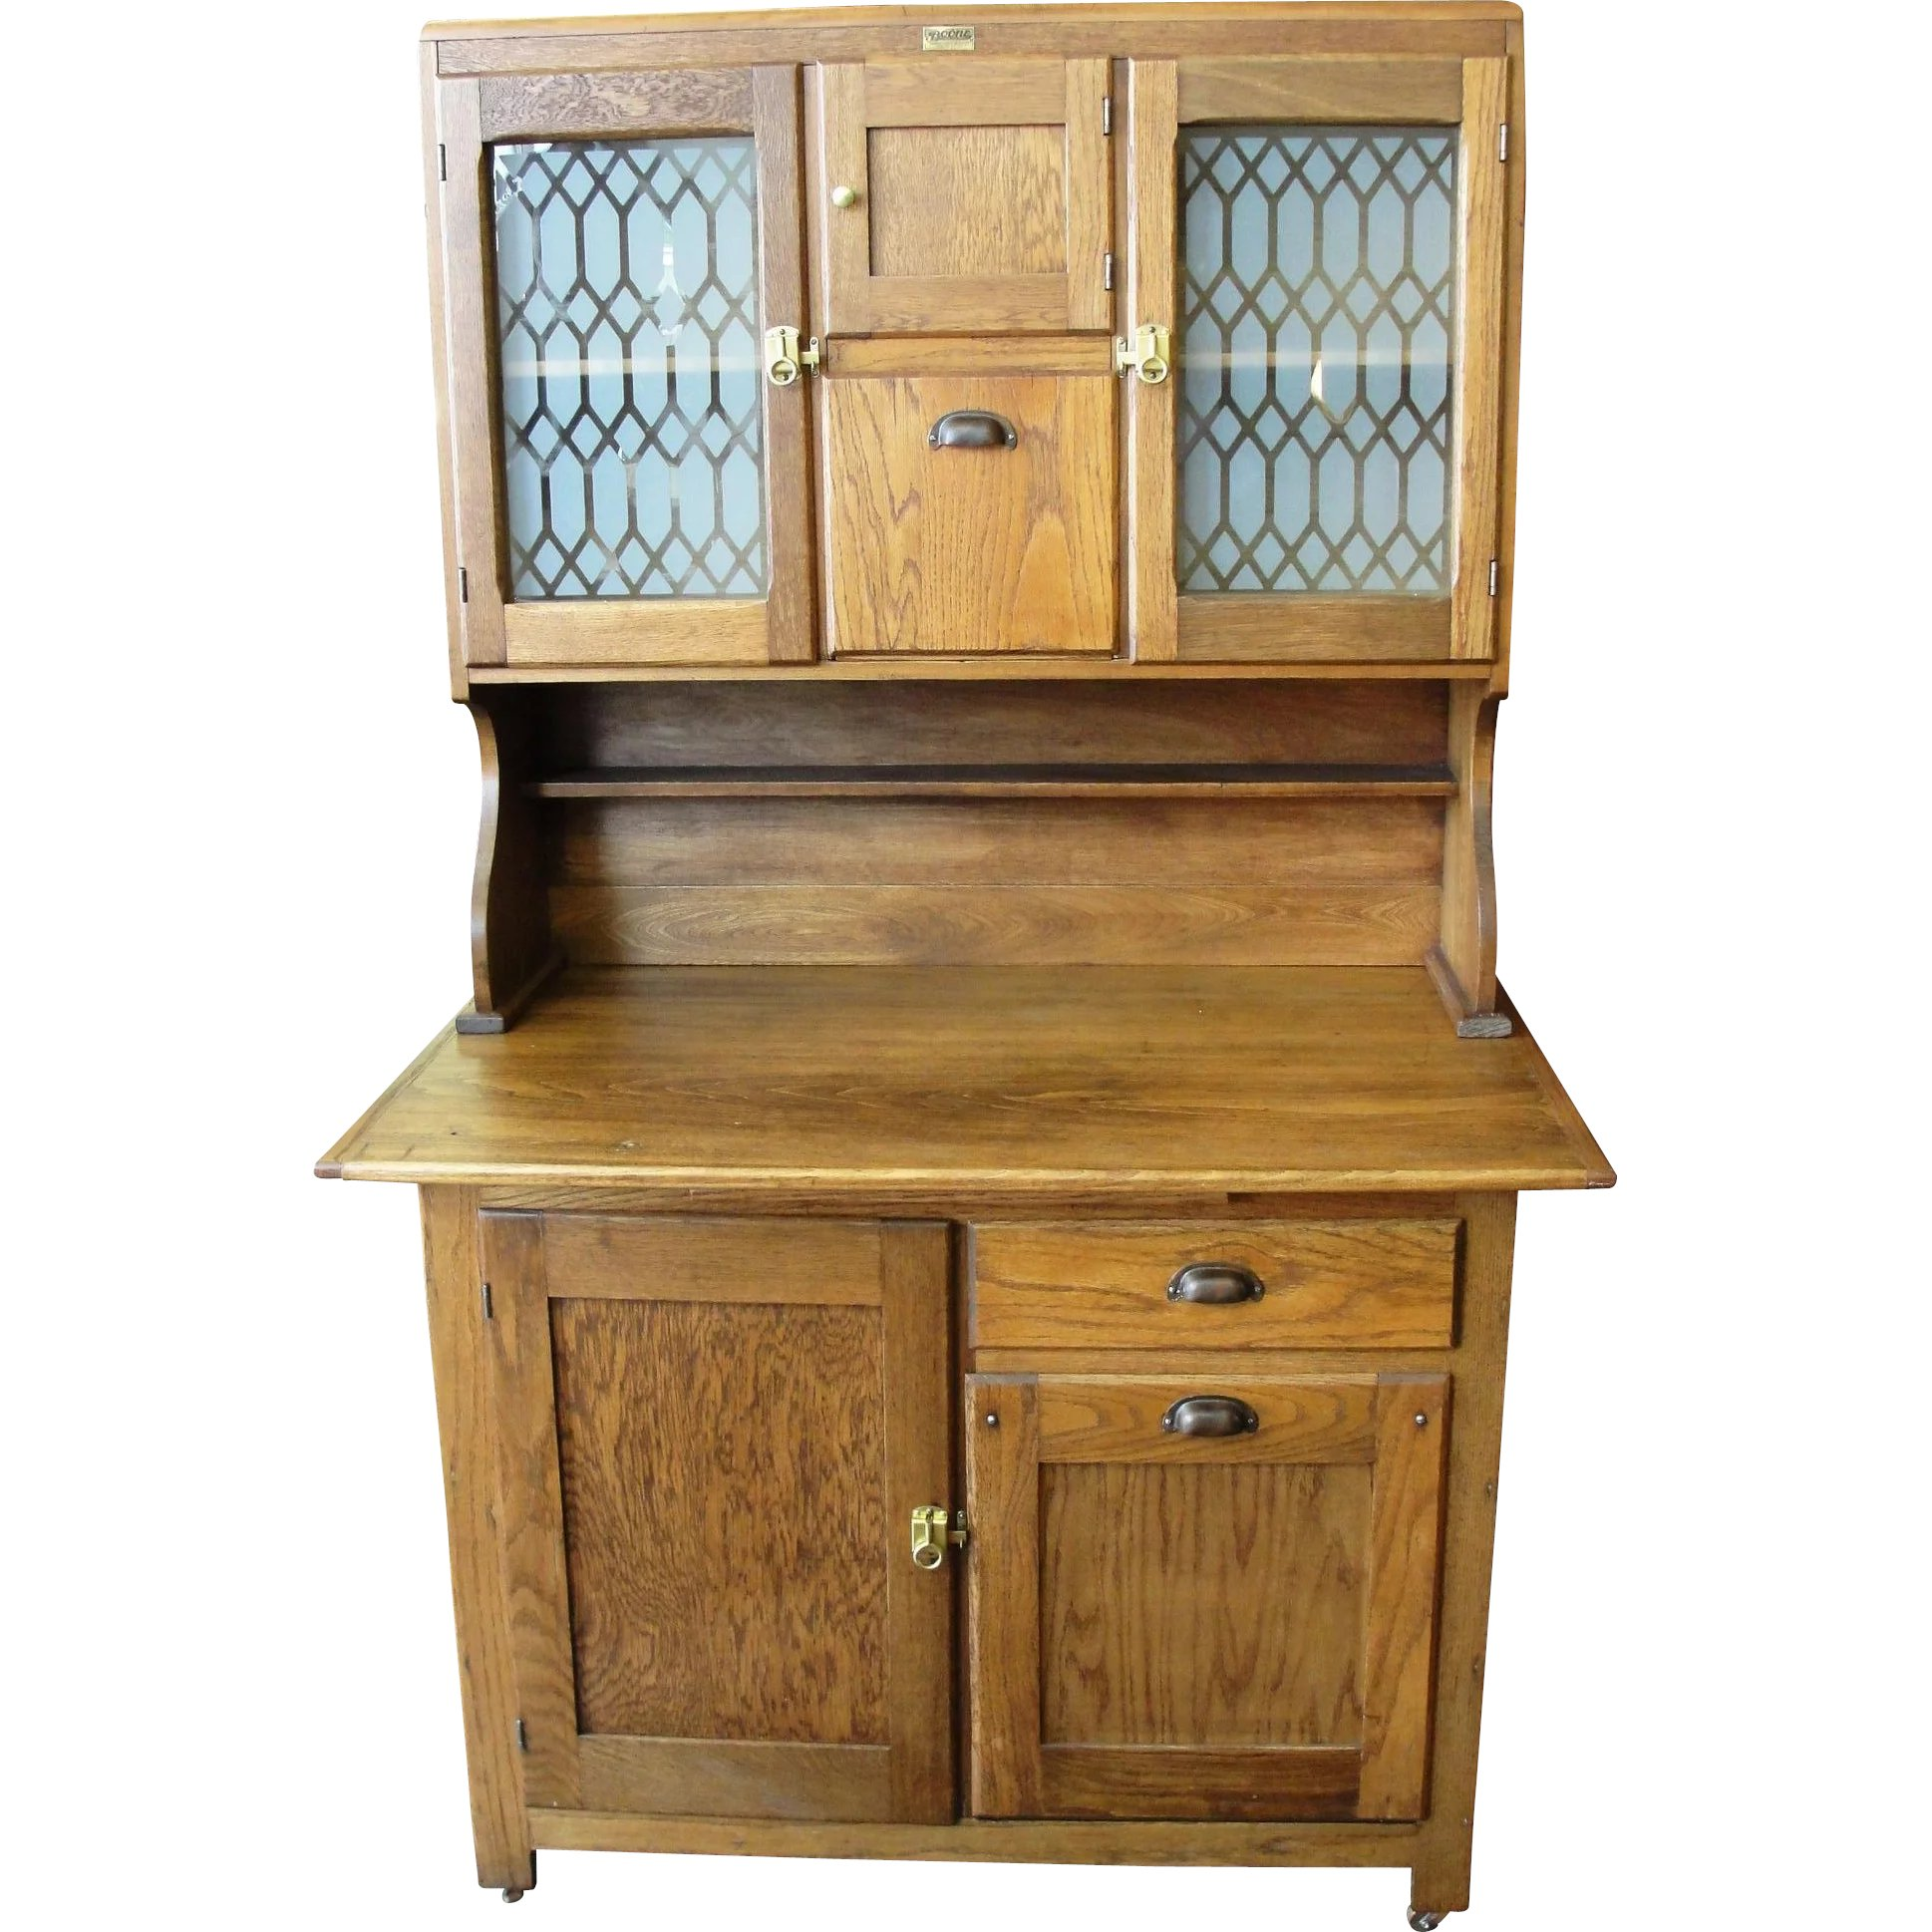 Antique Cabinets Kitchen: Antique Boone Oak 2 Piece Kitchen Cabinet : Bread & Butter